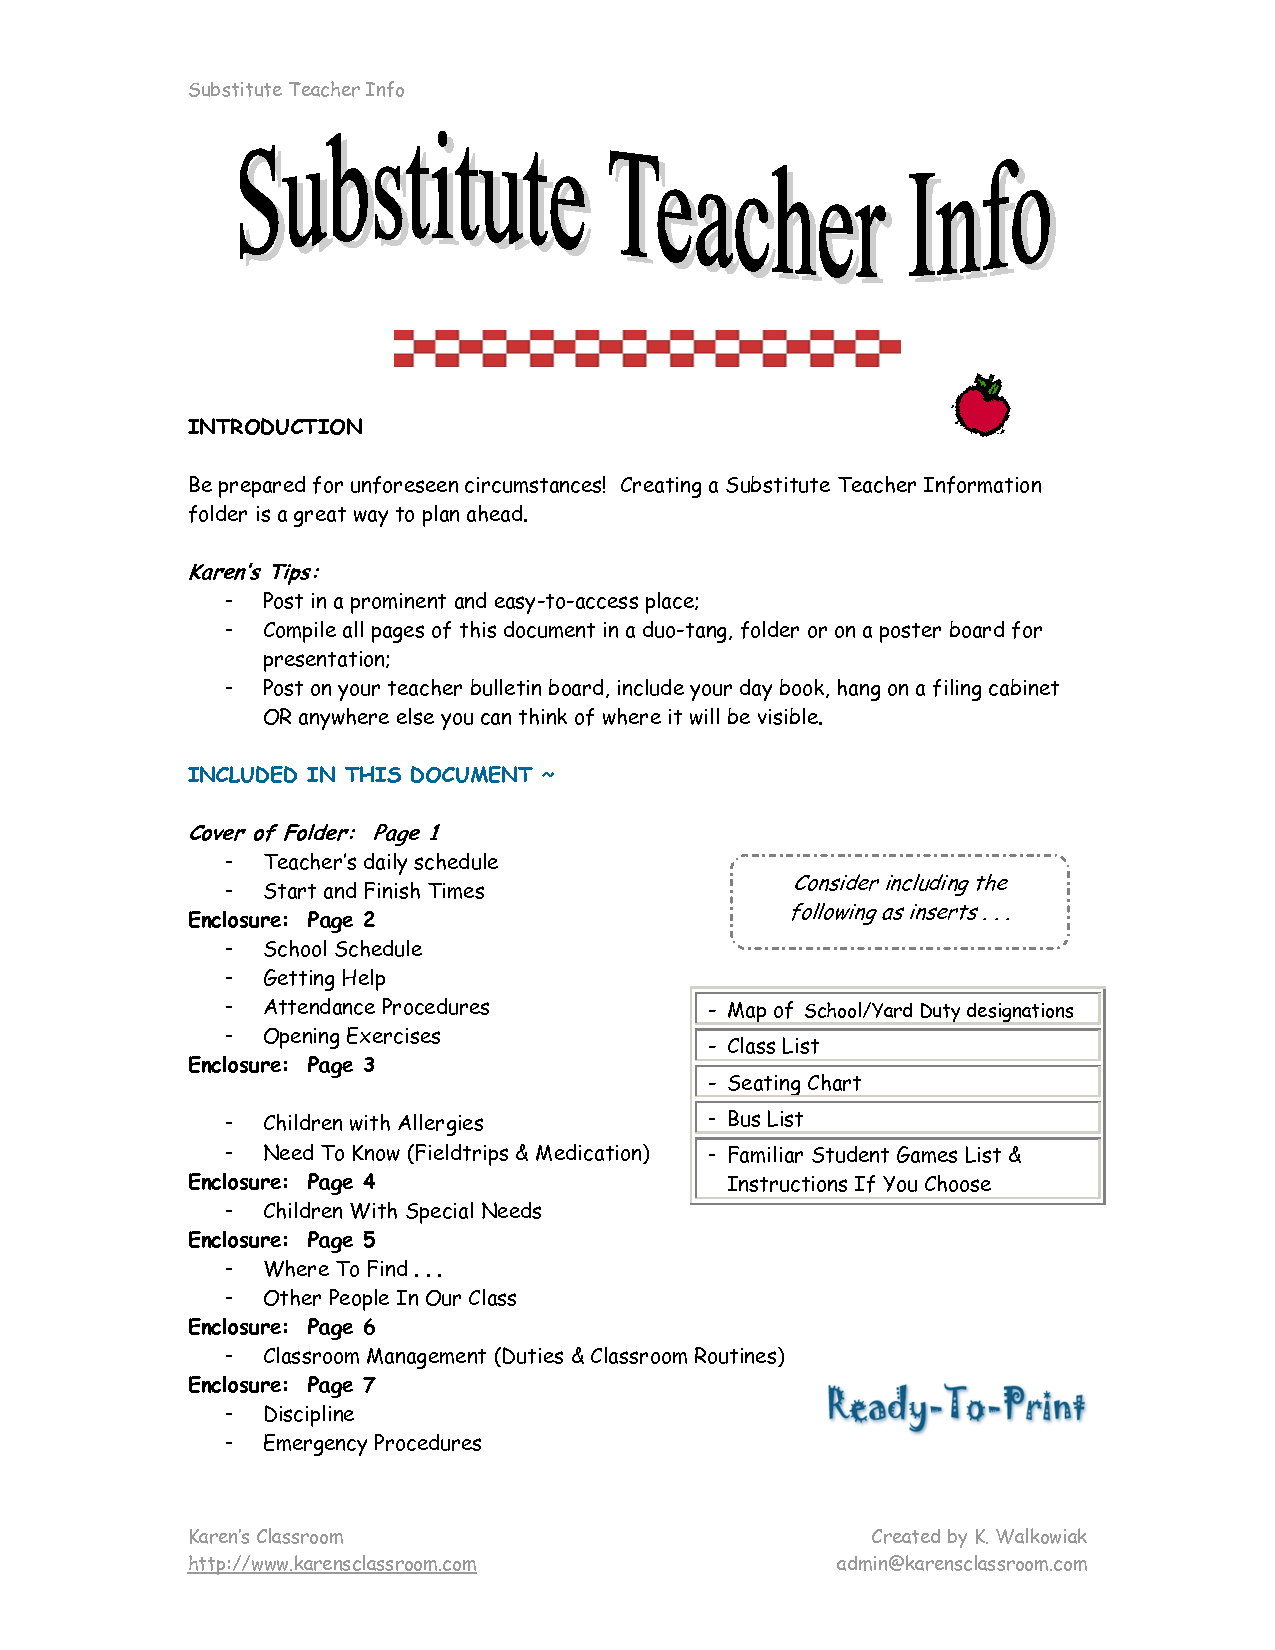 Resumes Cvs Http Www Teachers Resumes Com Au Teachers